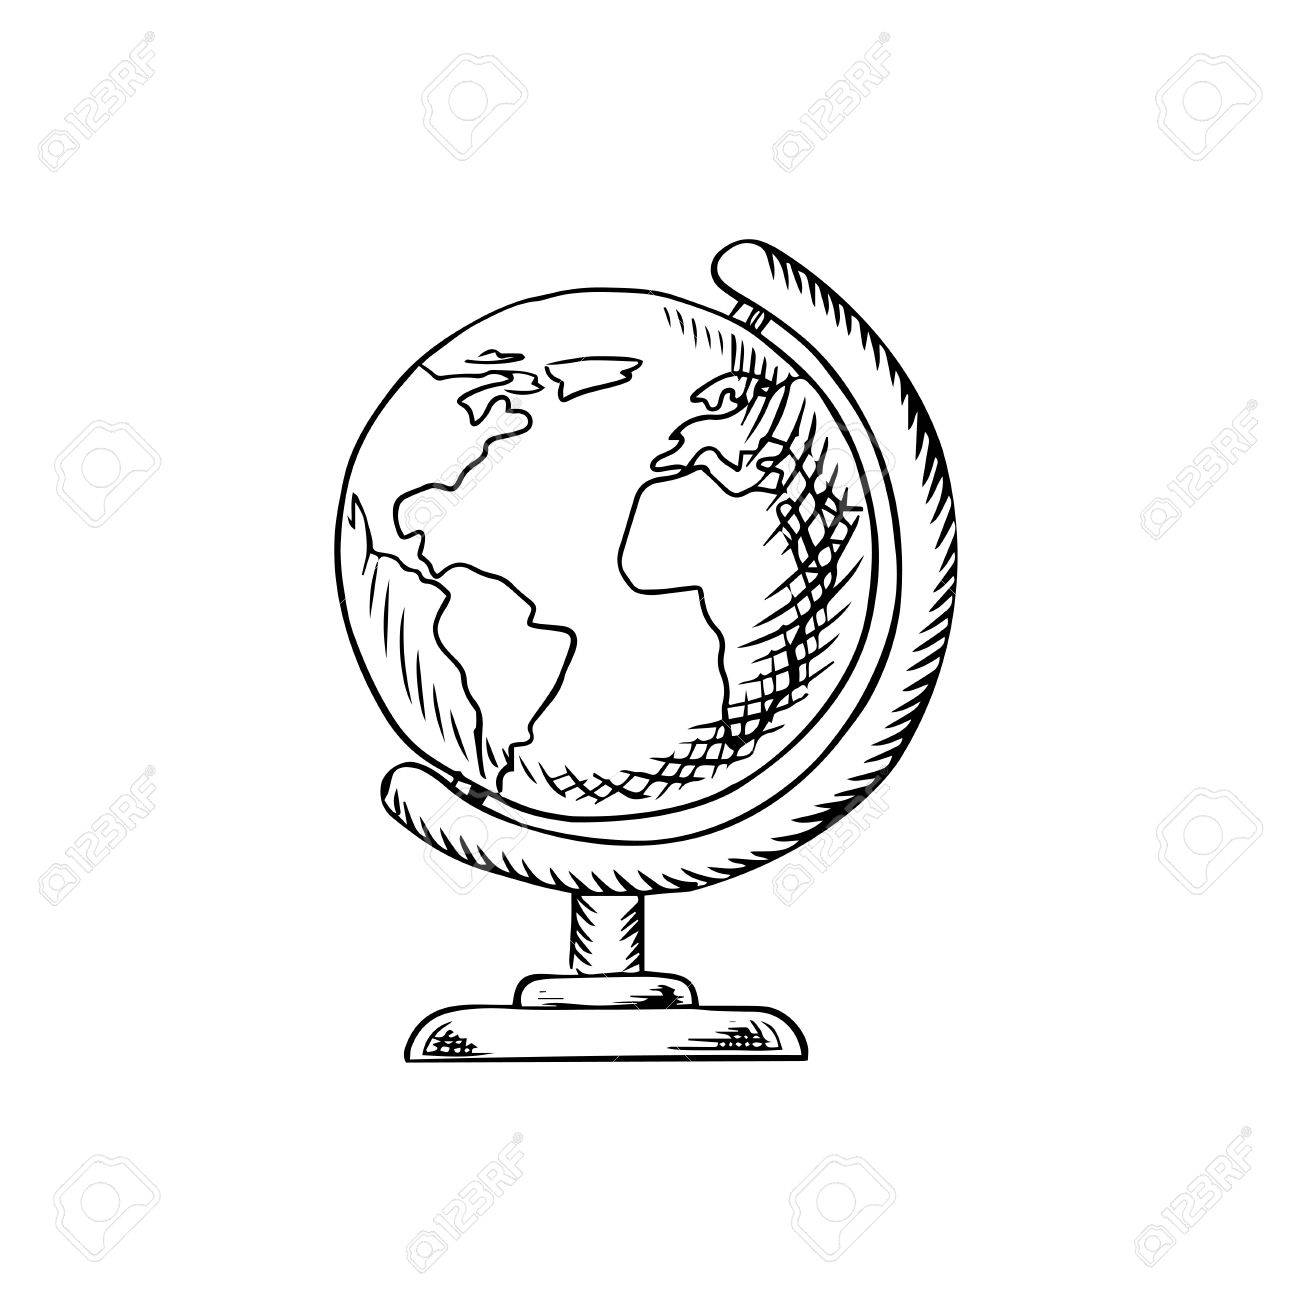 1300x1300 Modern Globe With Continents, Oceans And Seas On Desktop Stand